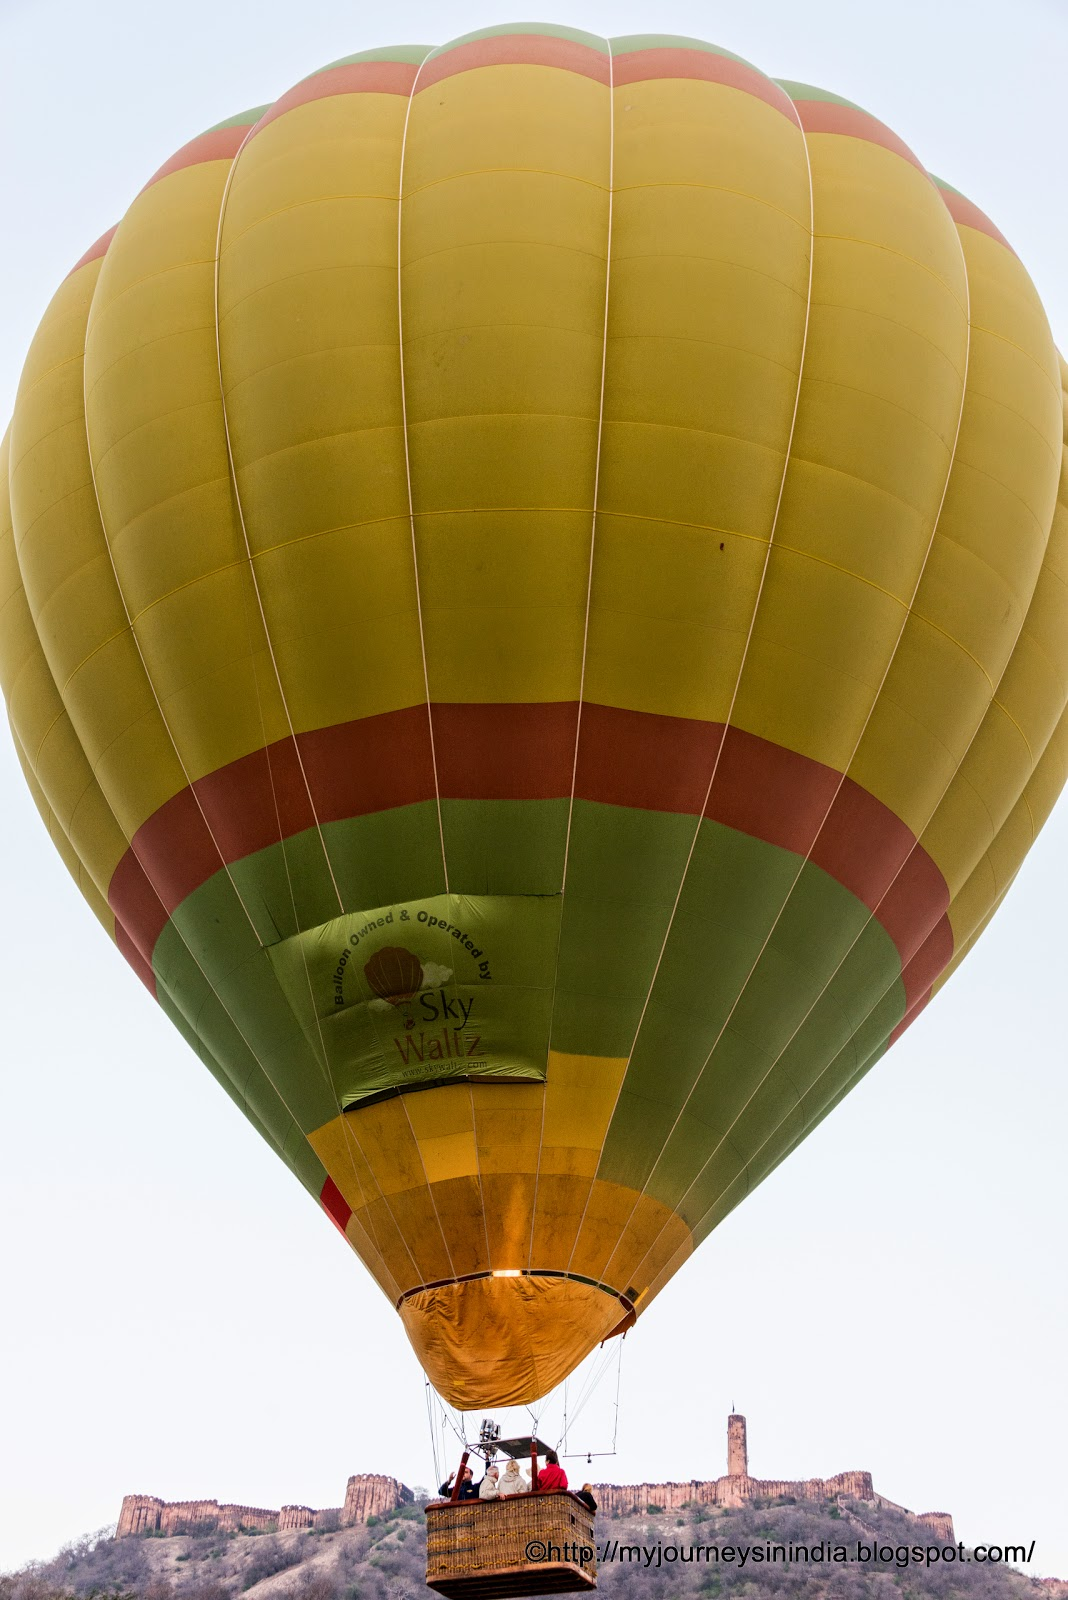 Hot Air Ballooning at Jaipur, Rajasthan India, Near Amer Fort